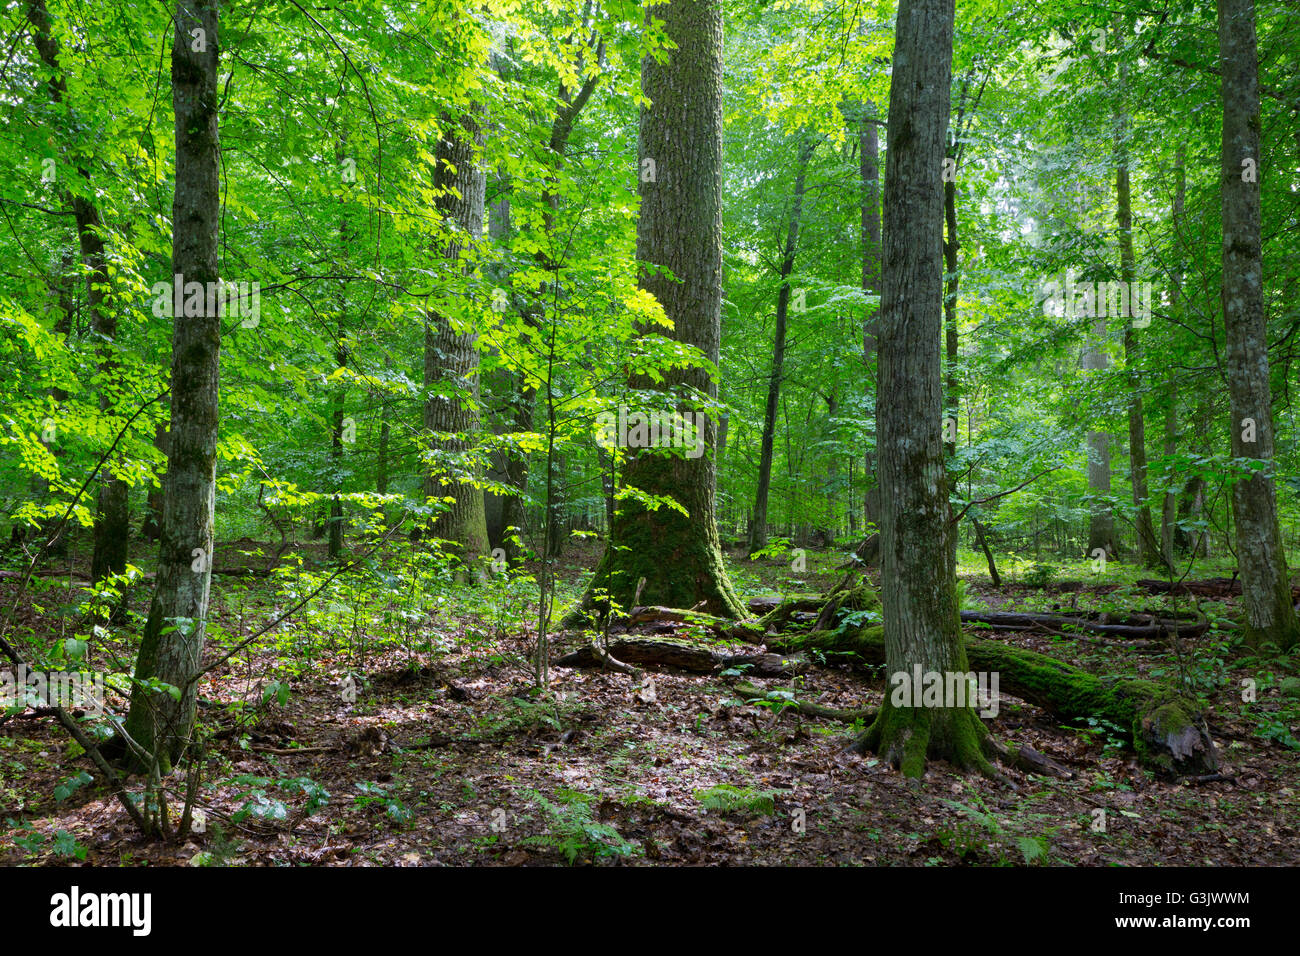 Primeval deciduous stand of natural forest in summertime,Bialowieza Forest,Poland,Europe Stock Photo